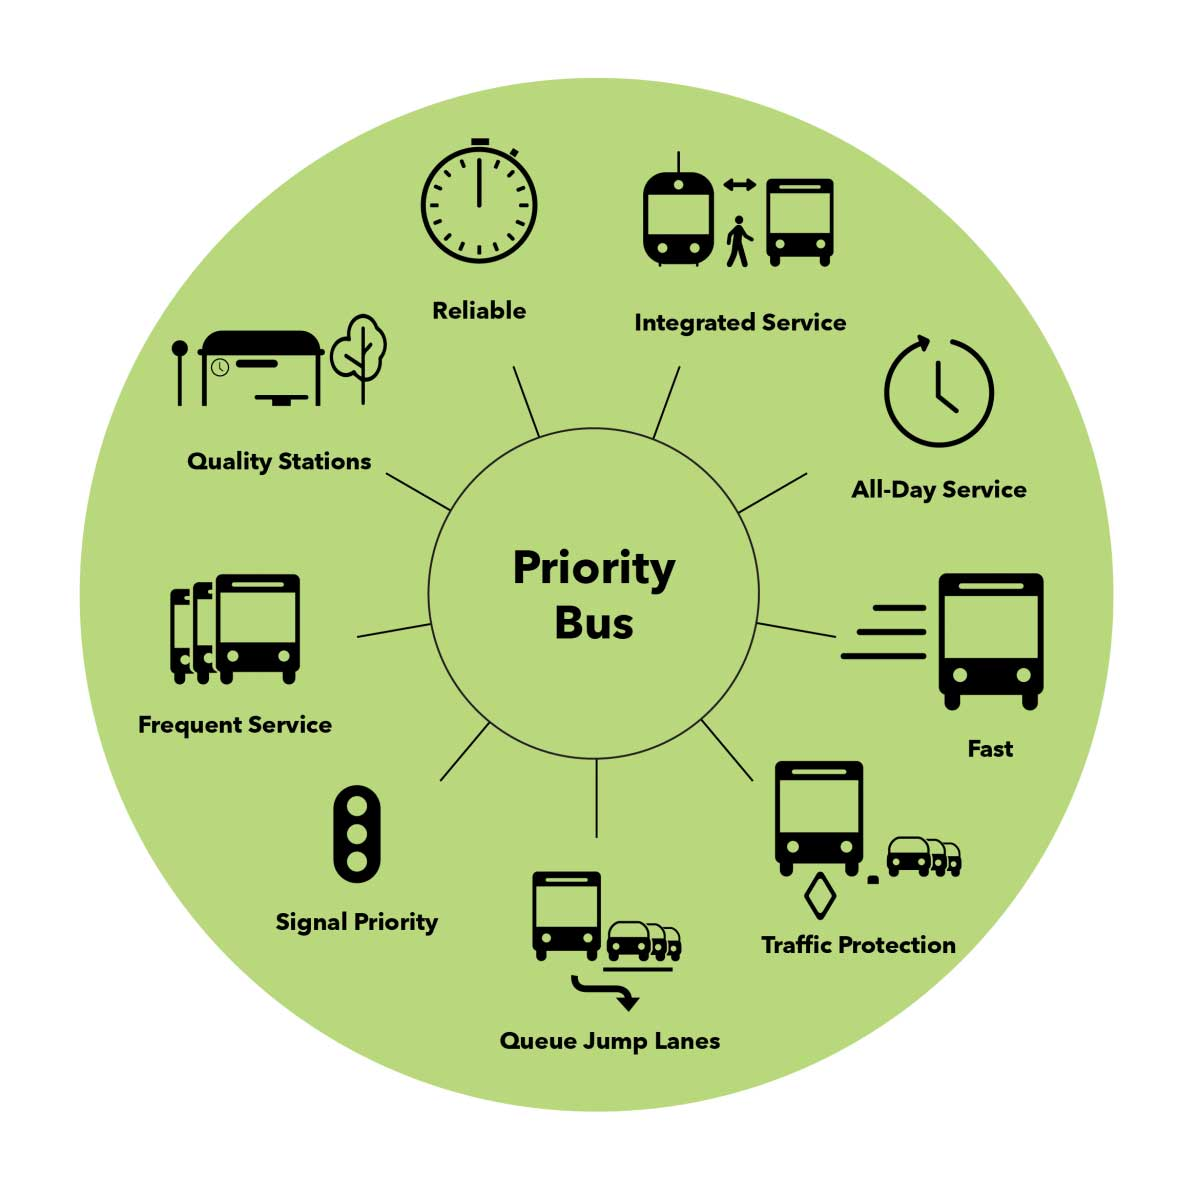 Graphic of Priority Bus icons